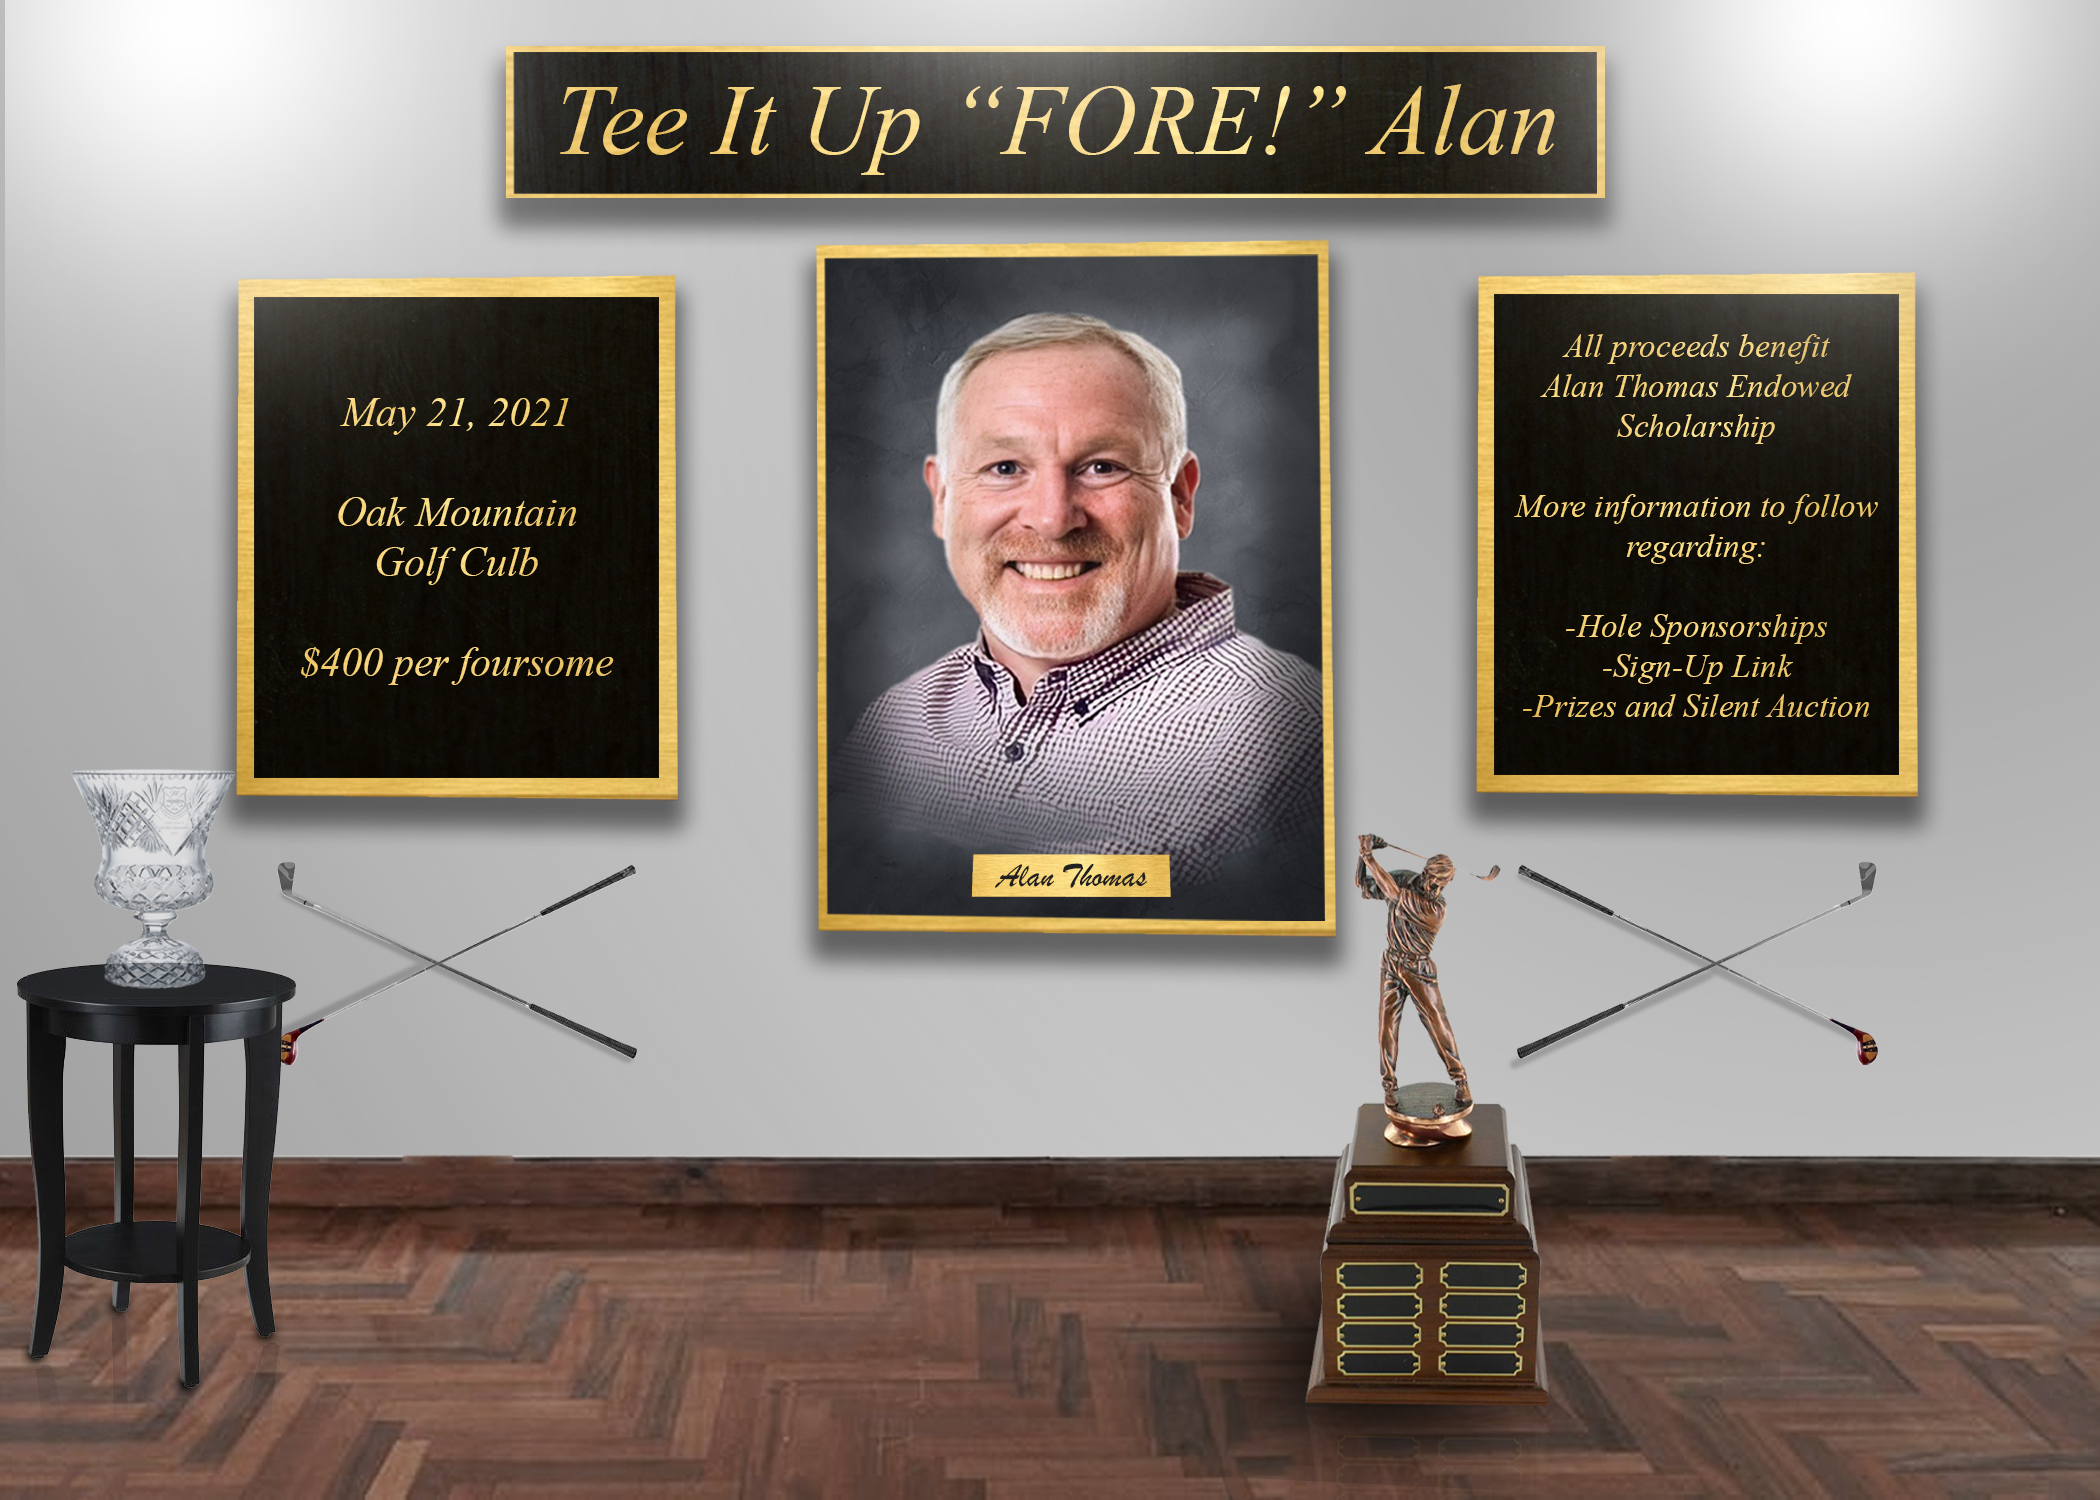 Tee it up  fore  alan